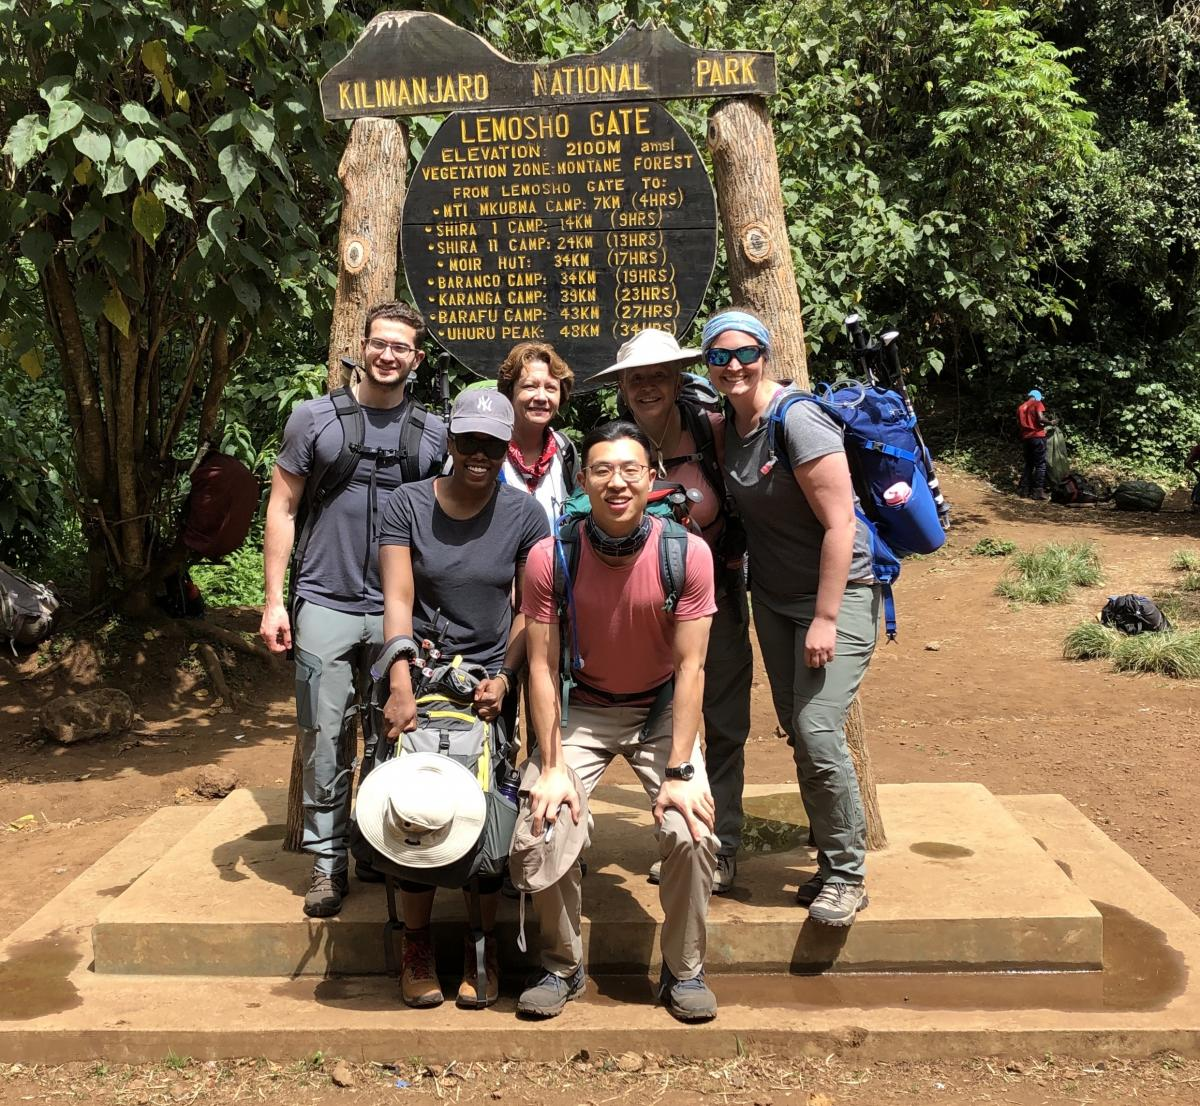 Caldeira, bottom left, with her group at the start of the hike.